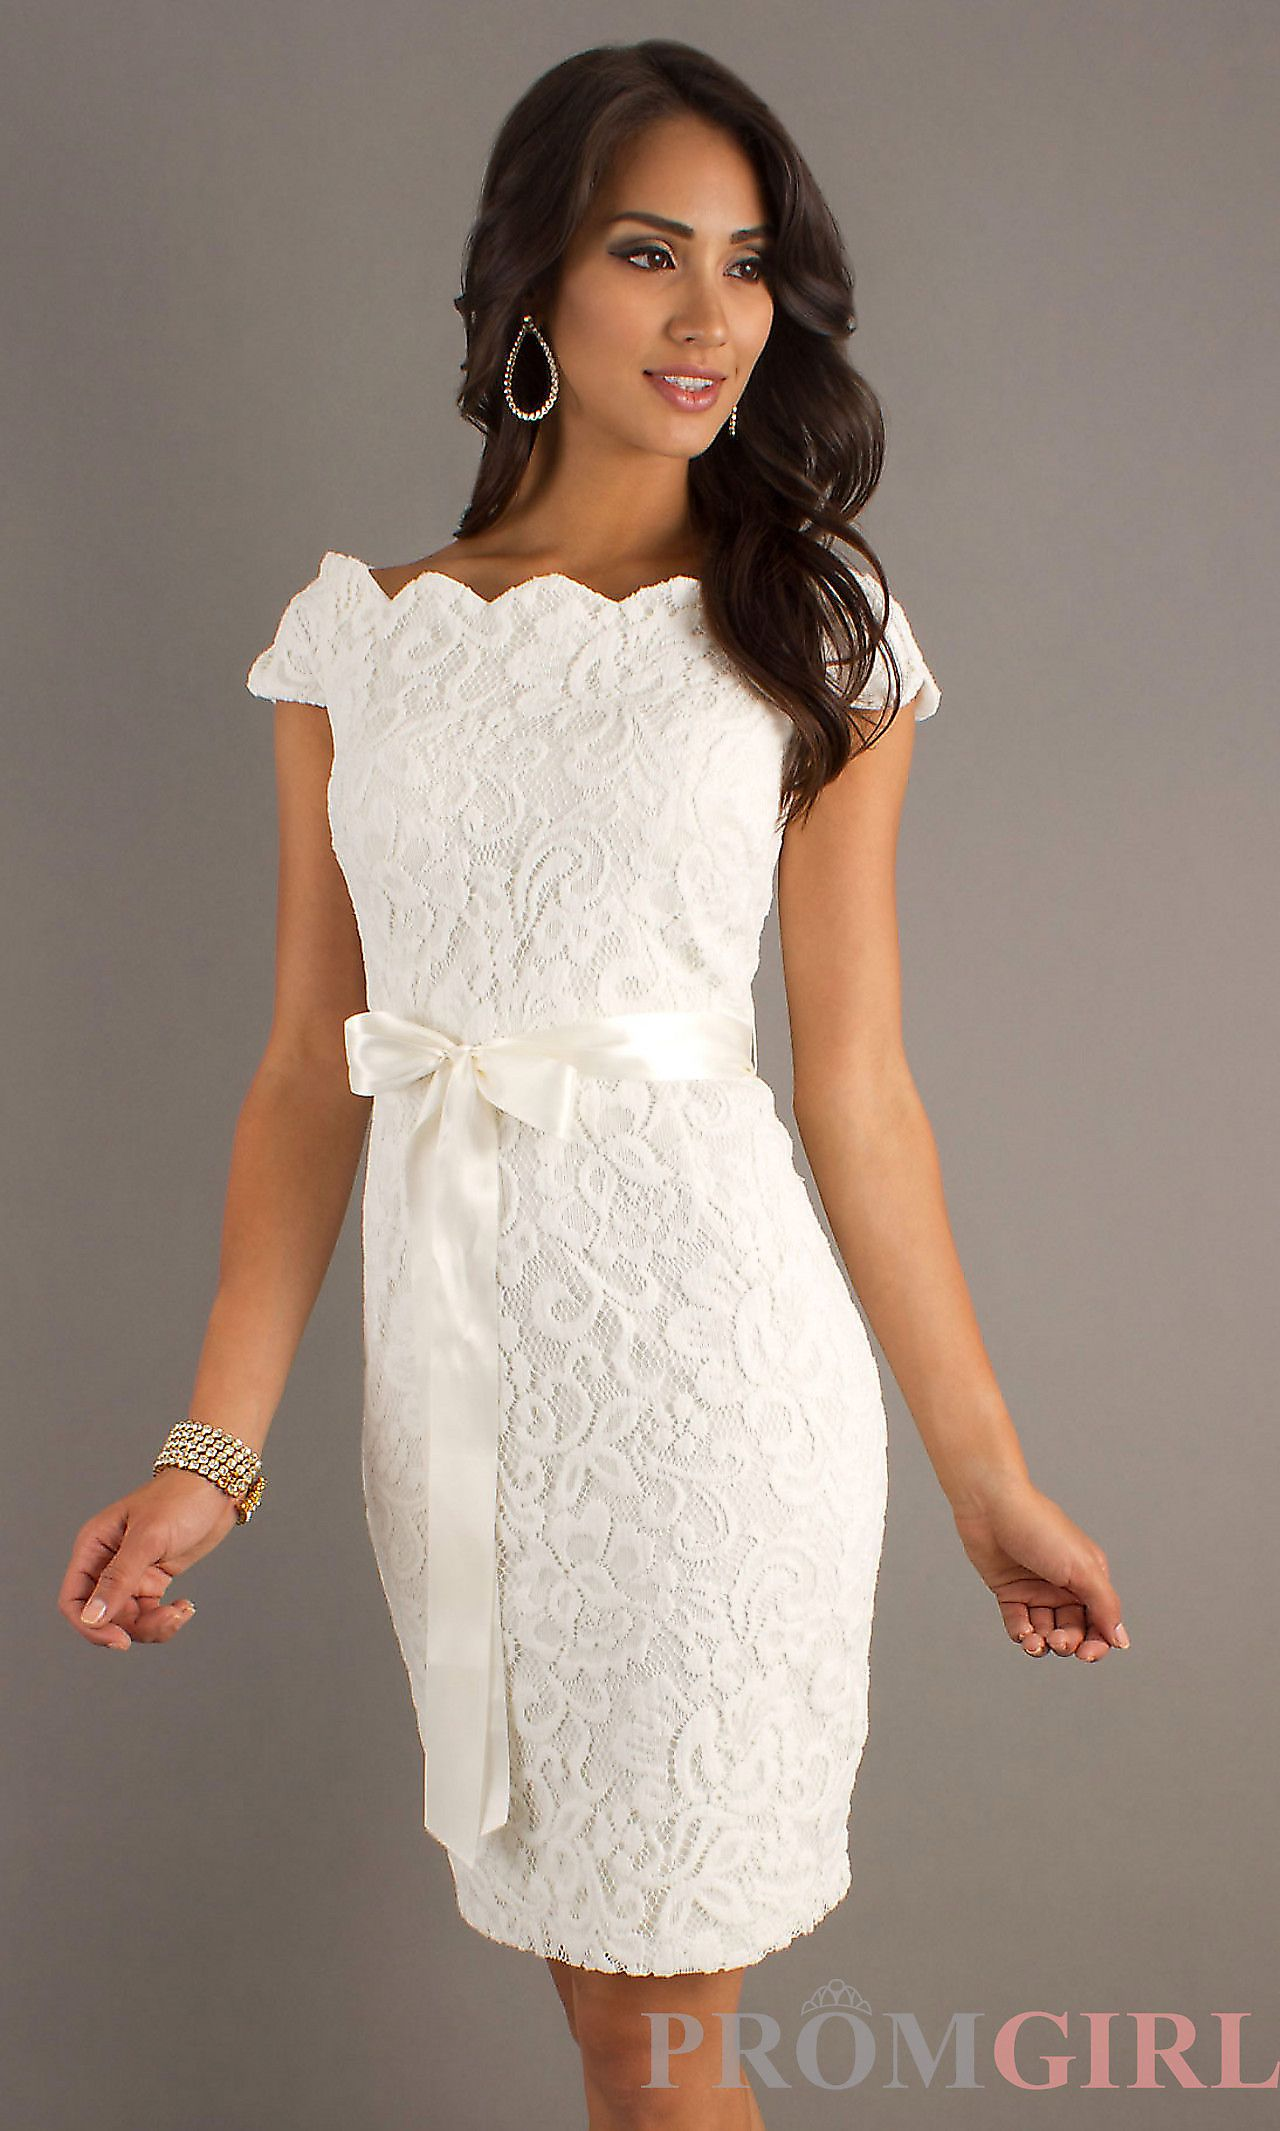 Small Crop Of White Bridal Shower Dress